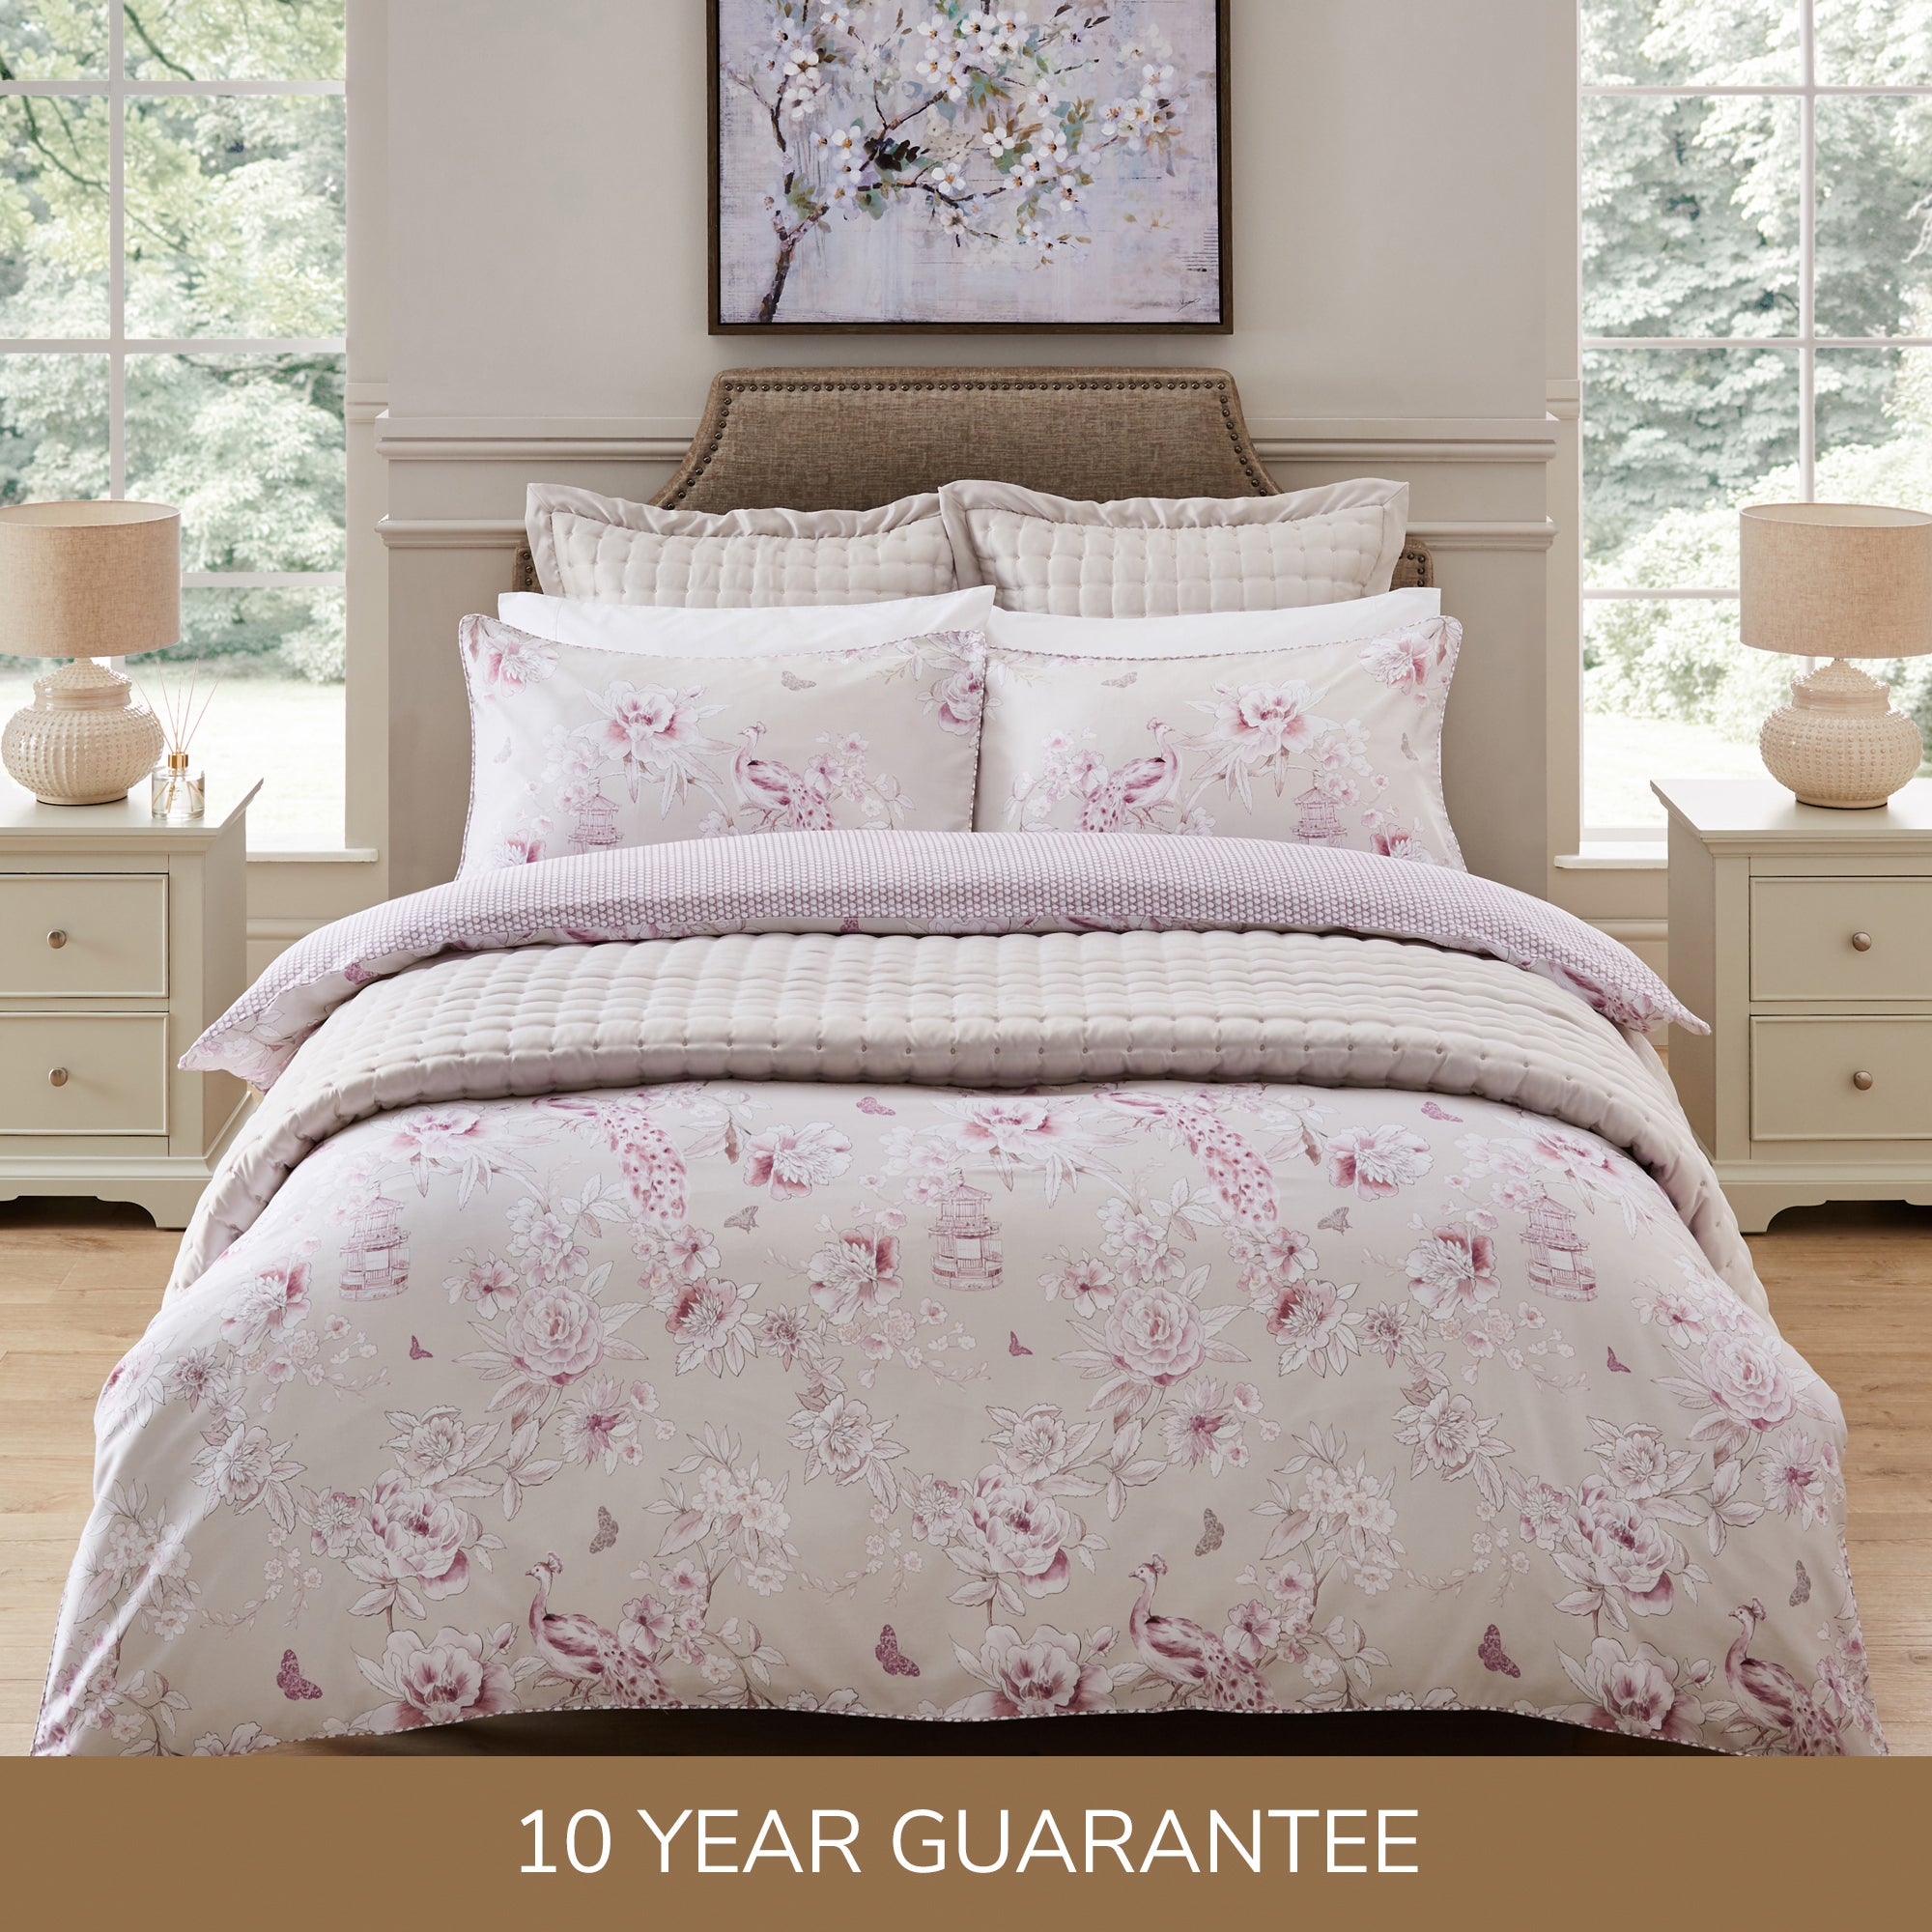 80 00 For Dorma Edina 100 Cotton Duvet Cover And Pillowcase Set Heather Pink Deal Direct Co Uk